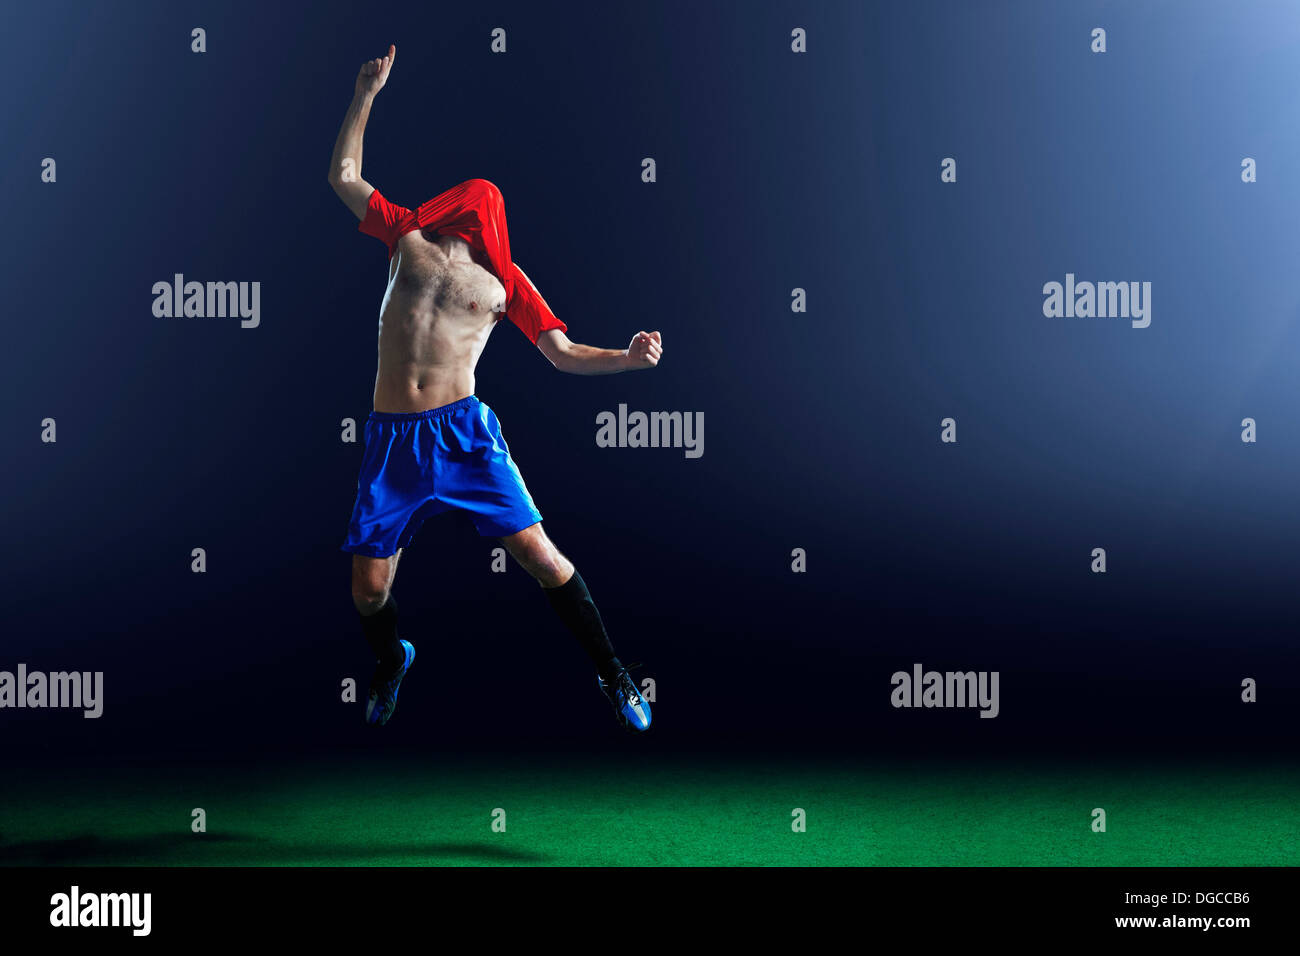 Male soccer player celebrating with shirt over head - Stock Image